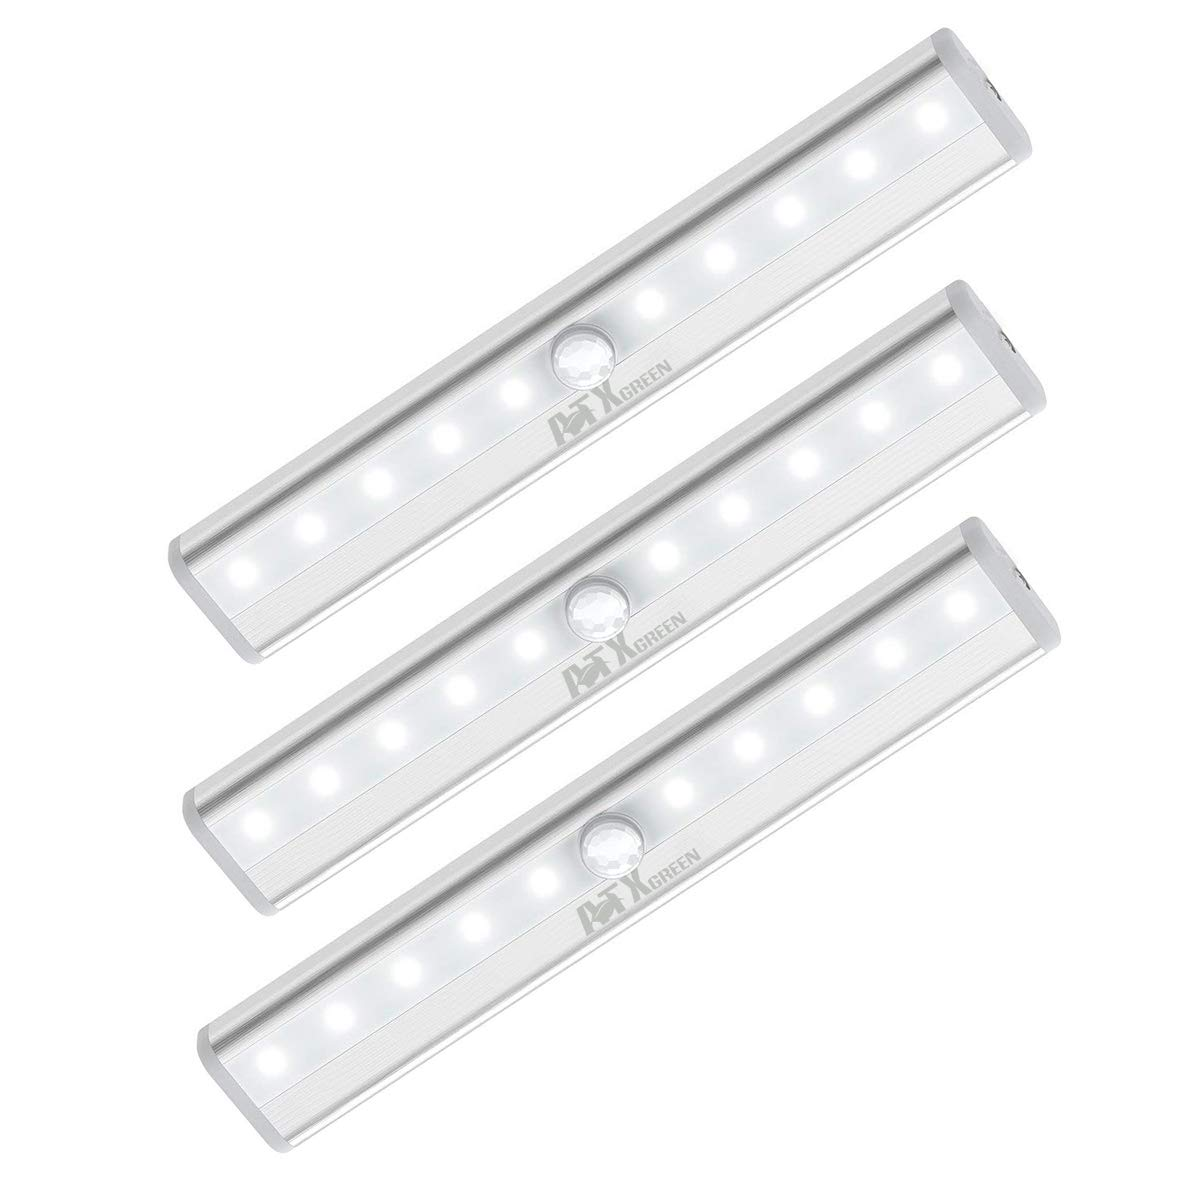 Closet Light, ATXgreen Motion Sensor Night Light 3 Pack -10 LEDs Homelife Motion Sensor Led Lights Stick-on Anywhere Wireless Magnetic Lights Bar for Stairs Cabinets Closets